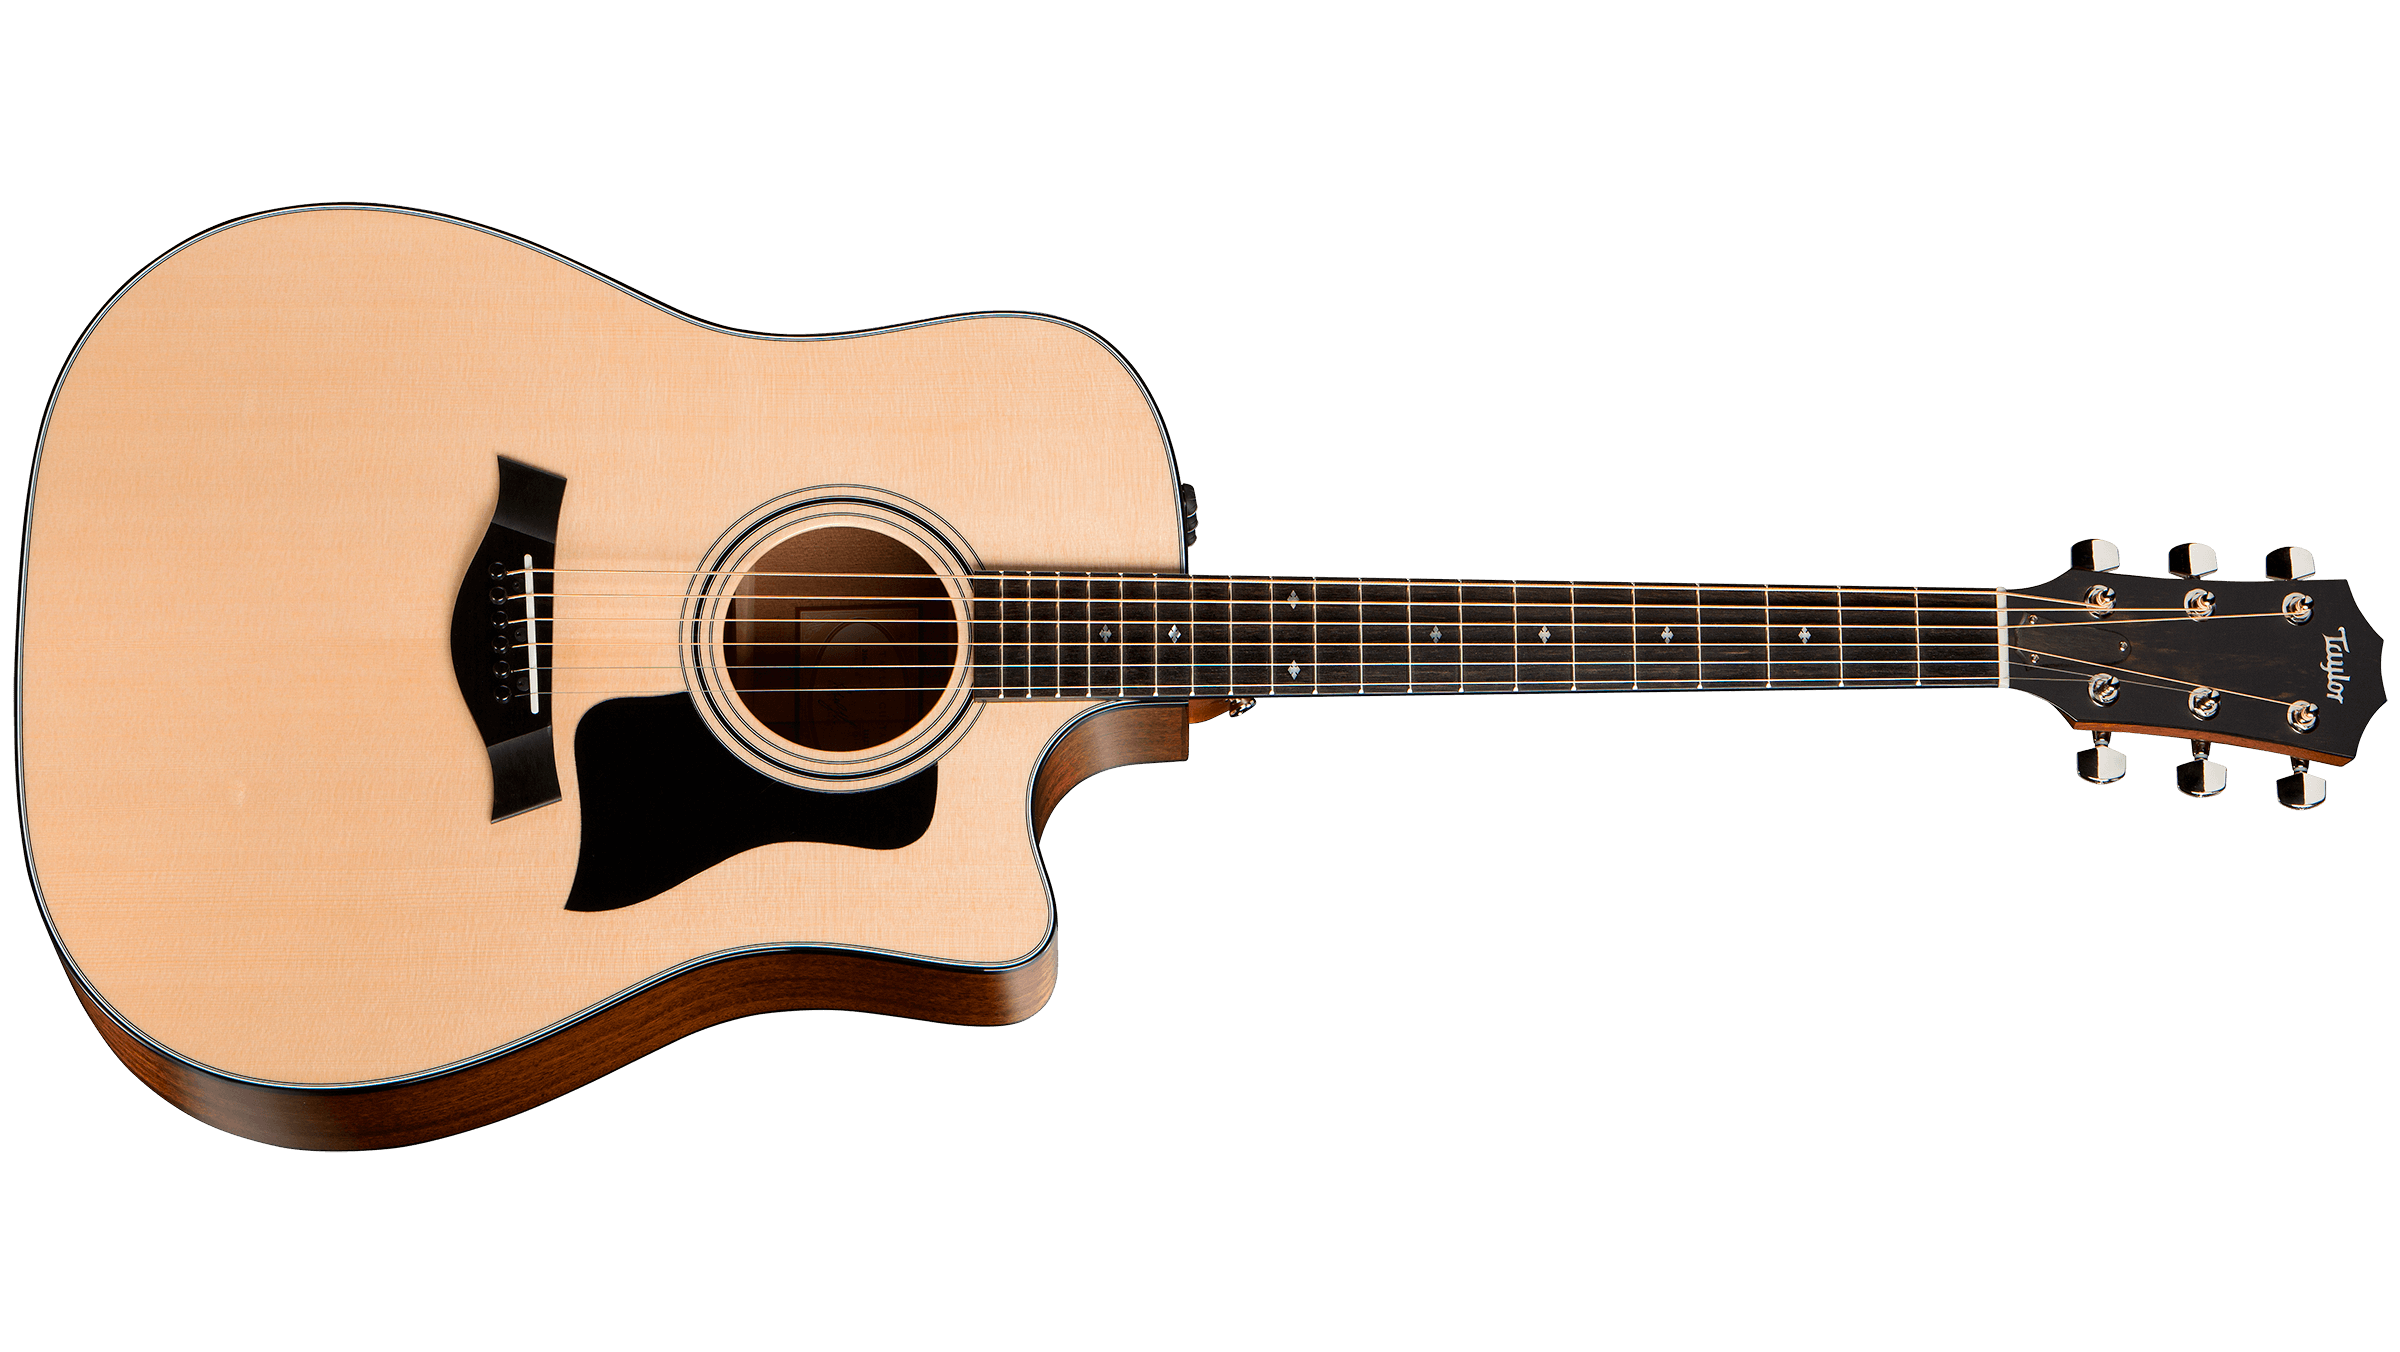 Taylor 310ce - Ok so this particular one is discontinued, but you can still find them on reverb. Honestly though, you can't go wrong with a Taylor. They are always gorgeous and classic!